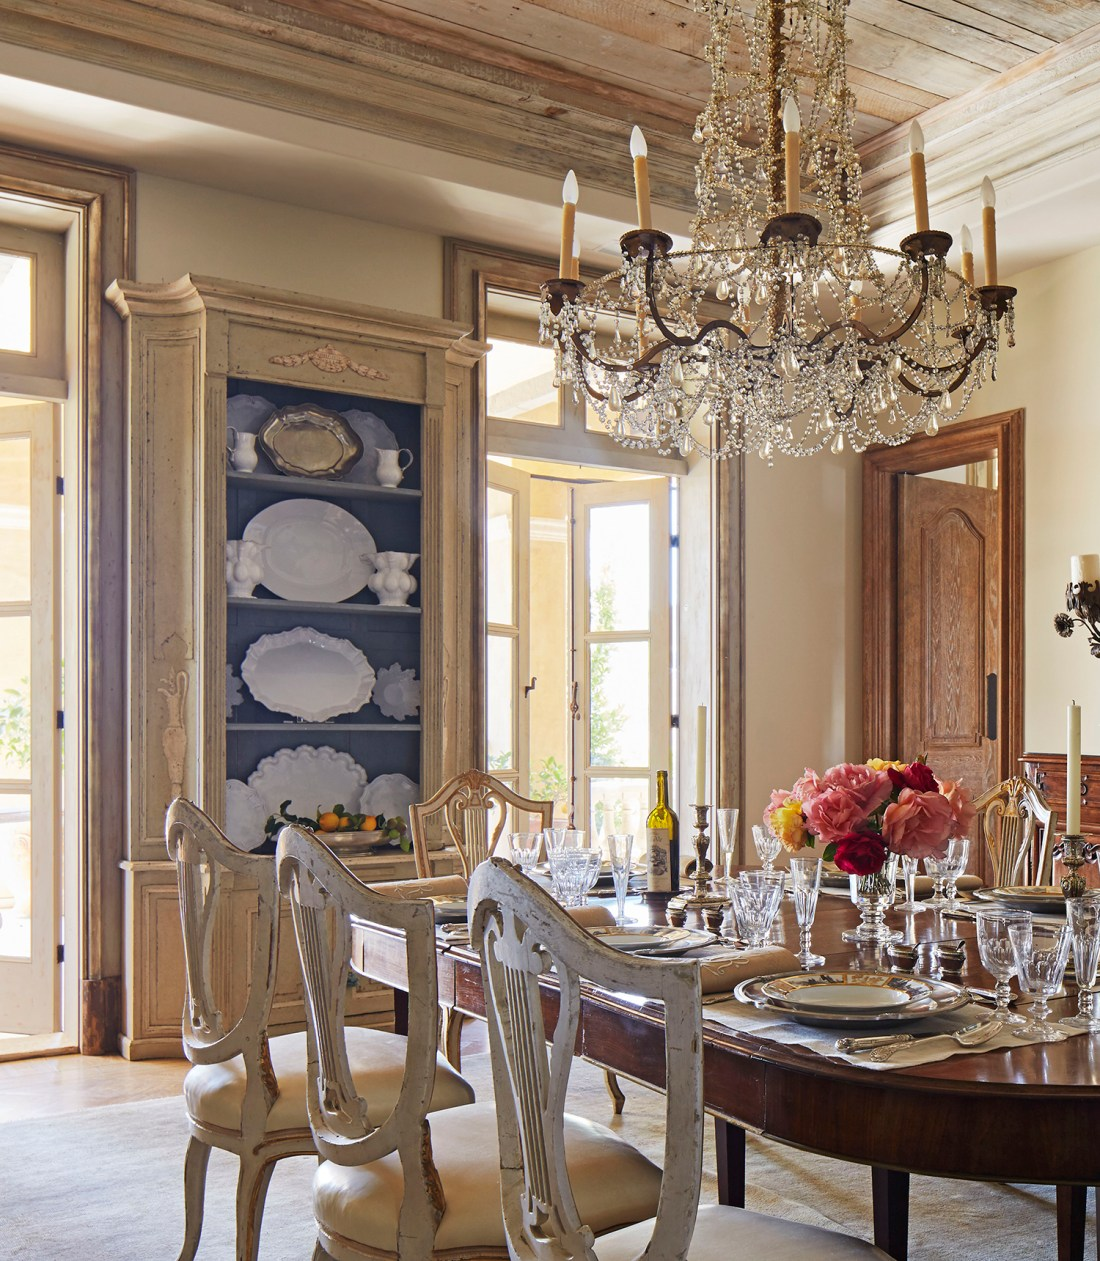 Dining Room Ideas | Gallery of Stunning Dining Room Pictures